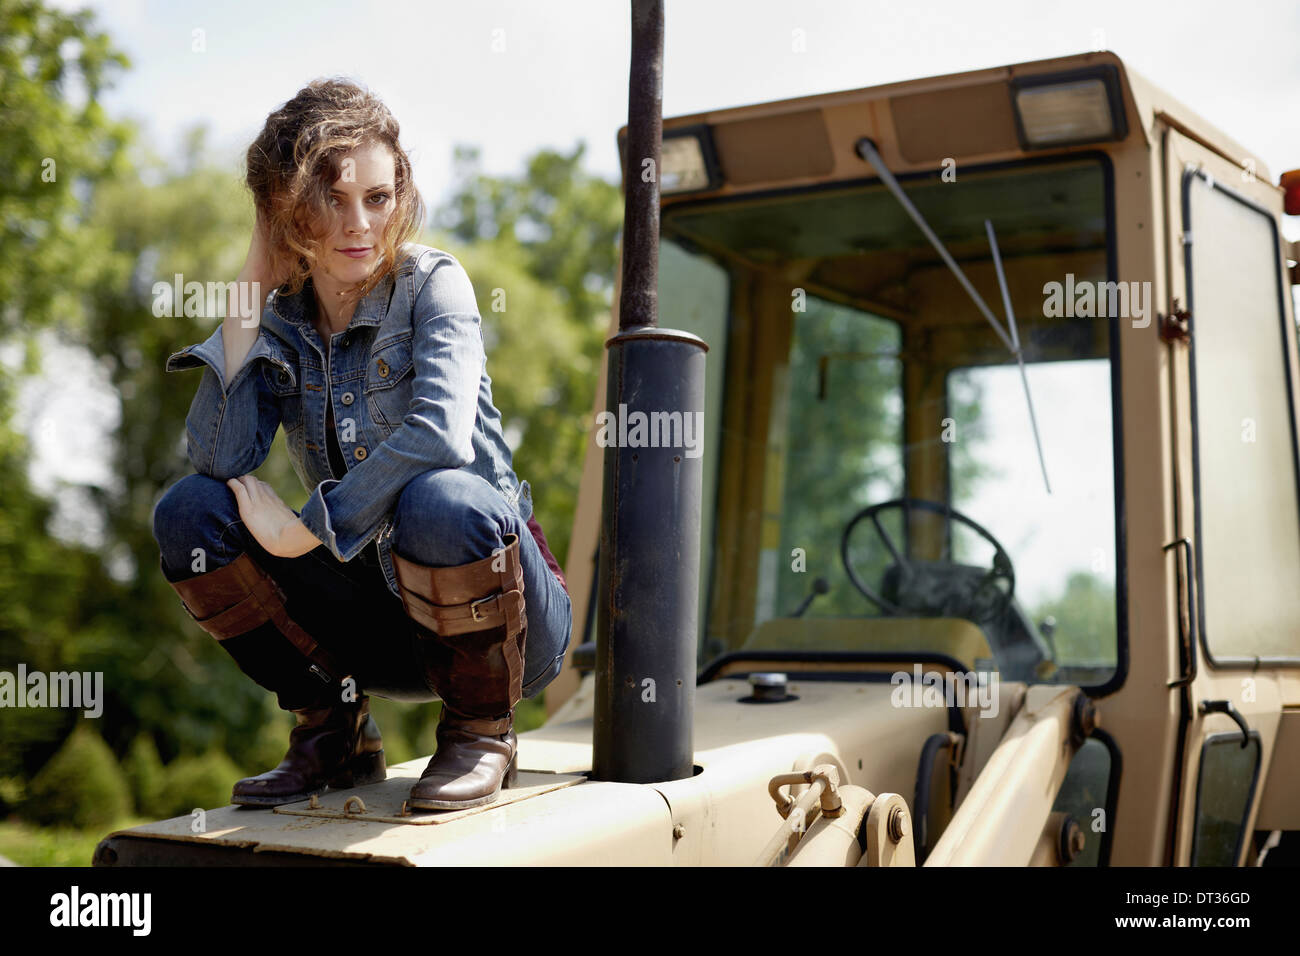 A young woman in denim jacket and boots on the hood of a tractor - Stock Image